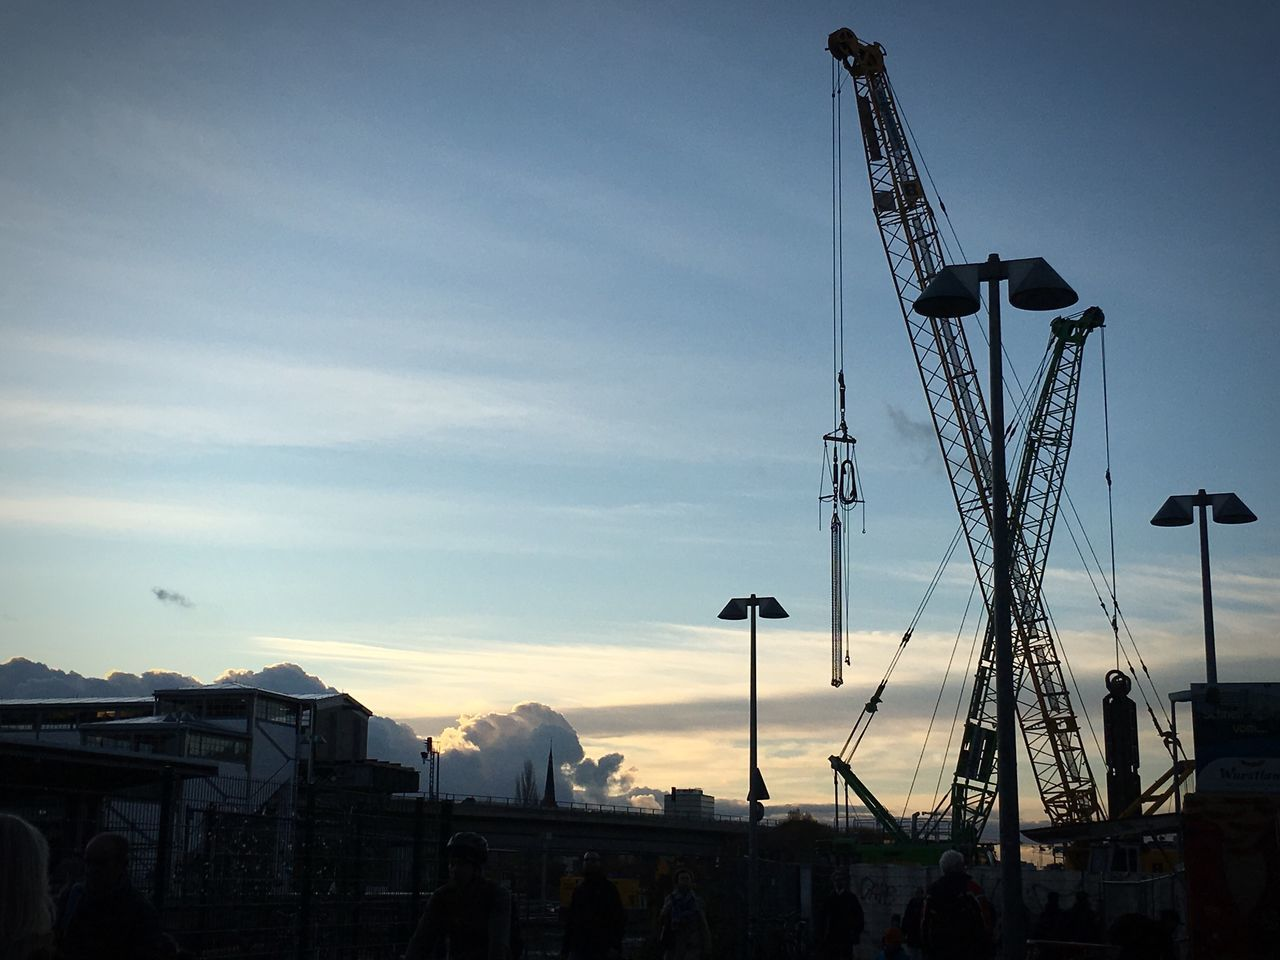 sky, silhouette, crane - construction machinery, built structure, outdoors, sunset, architecture, no people, building exterior, day, nature